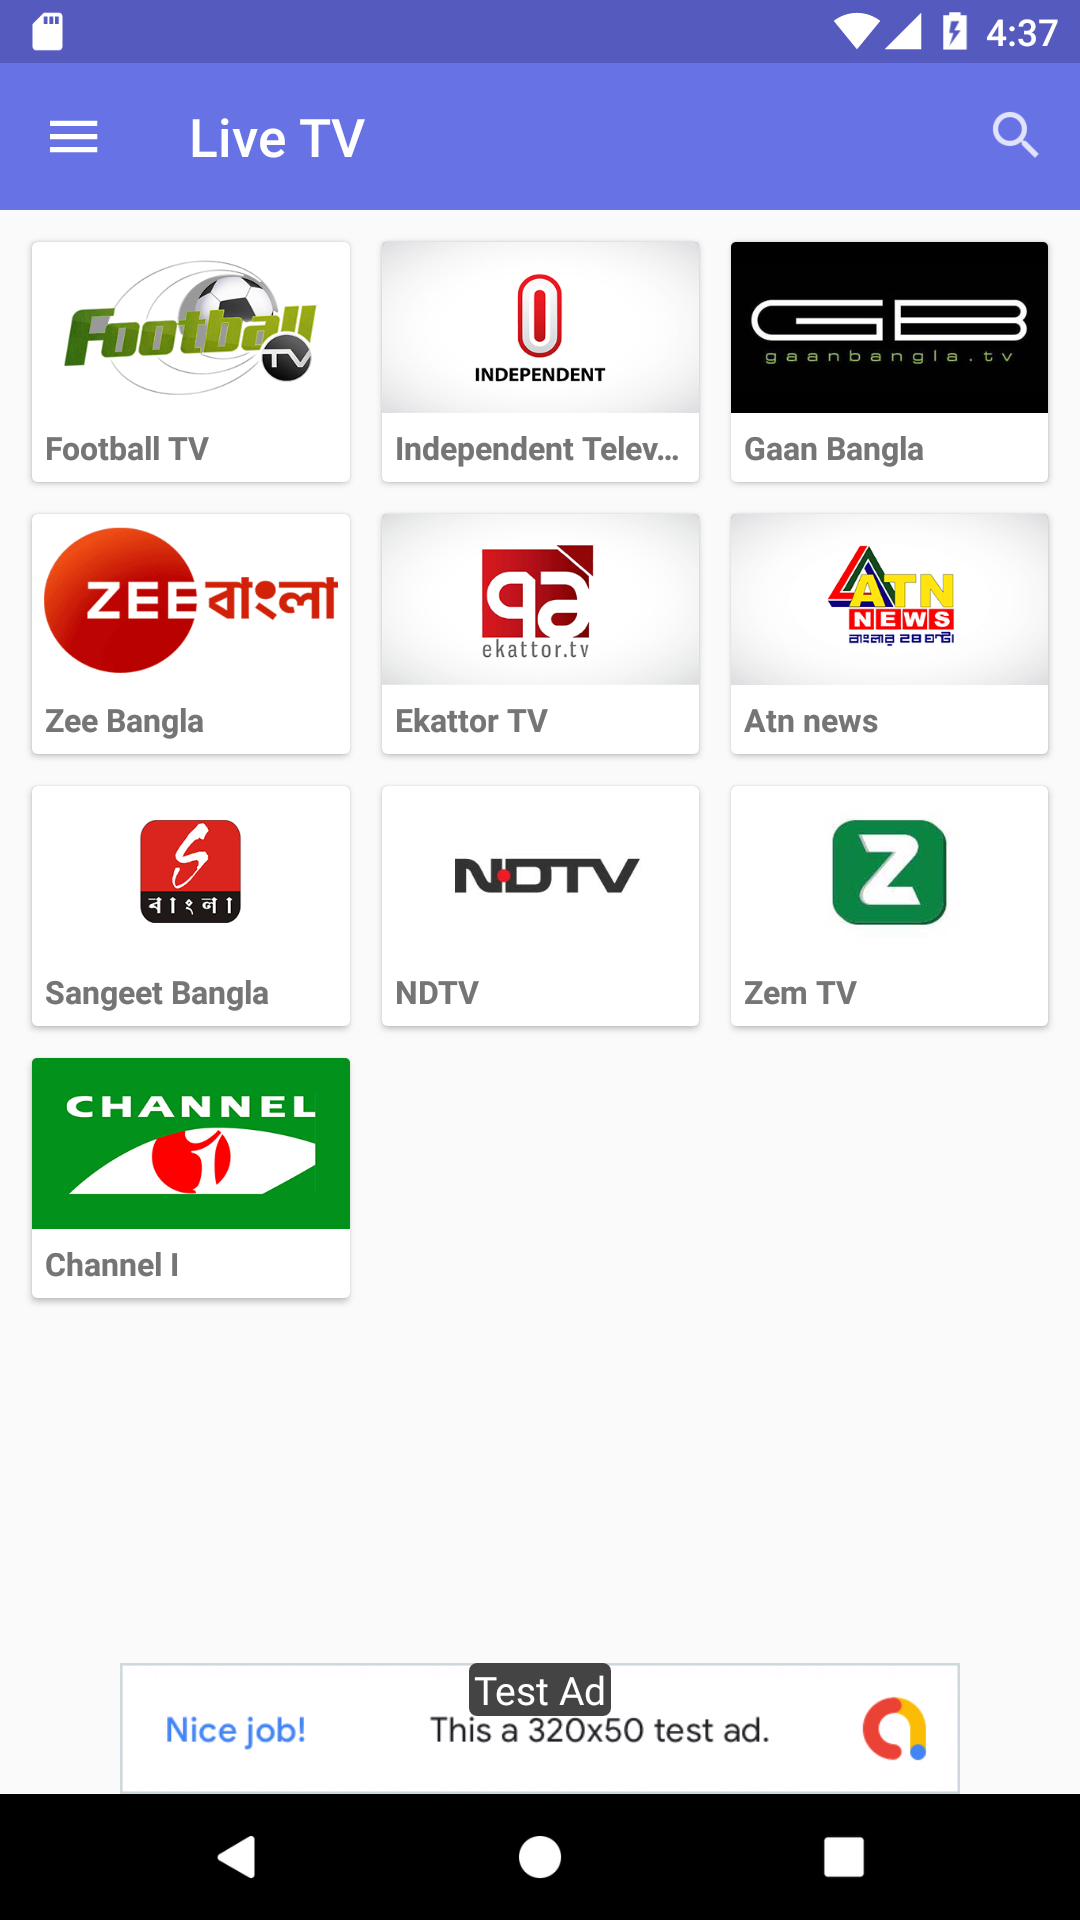 OXOO - Android Live TV & Movie Portal App with Powerful